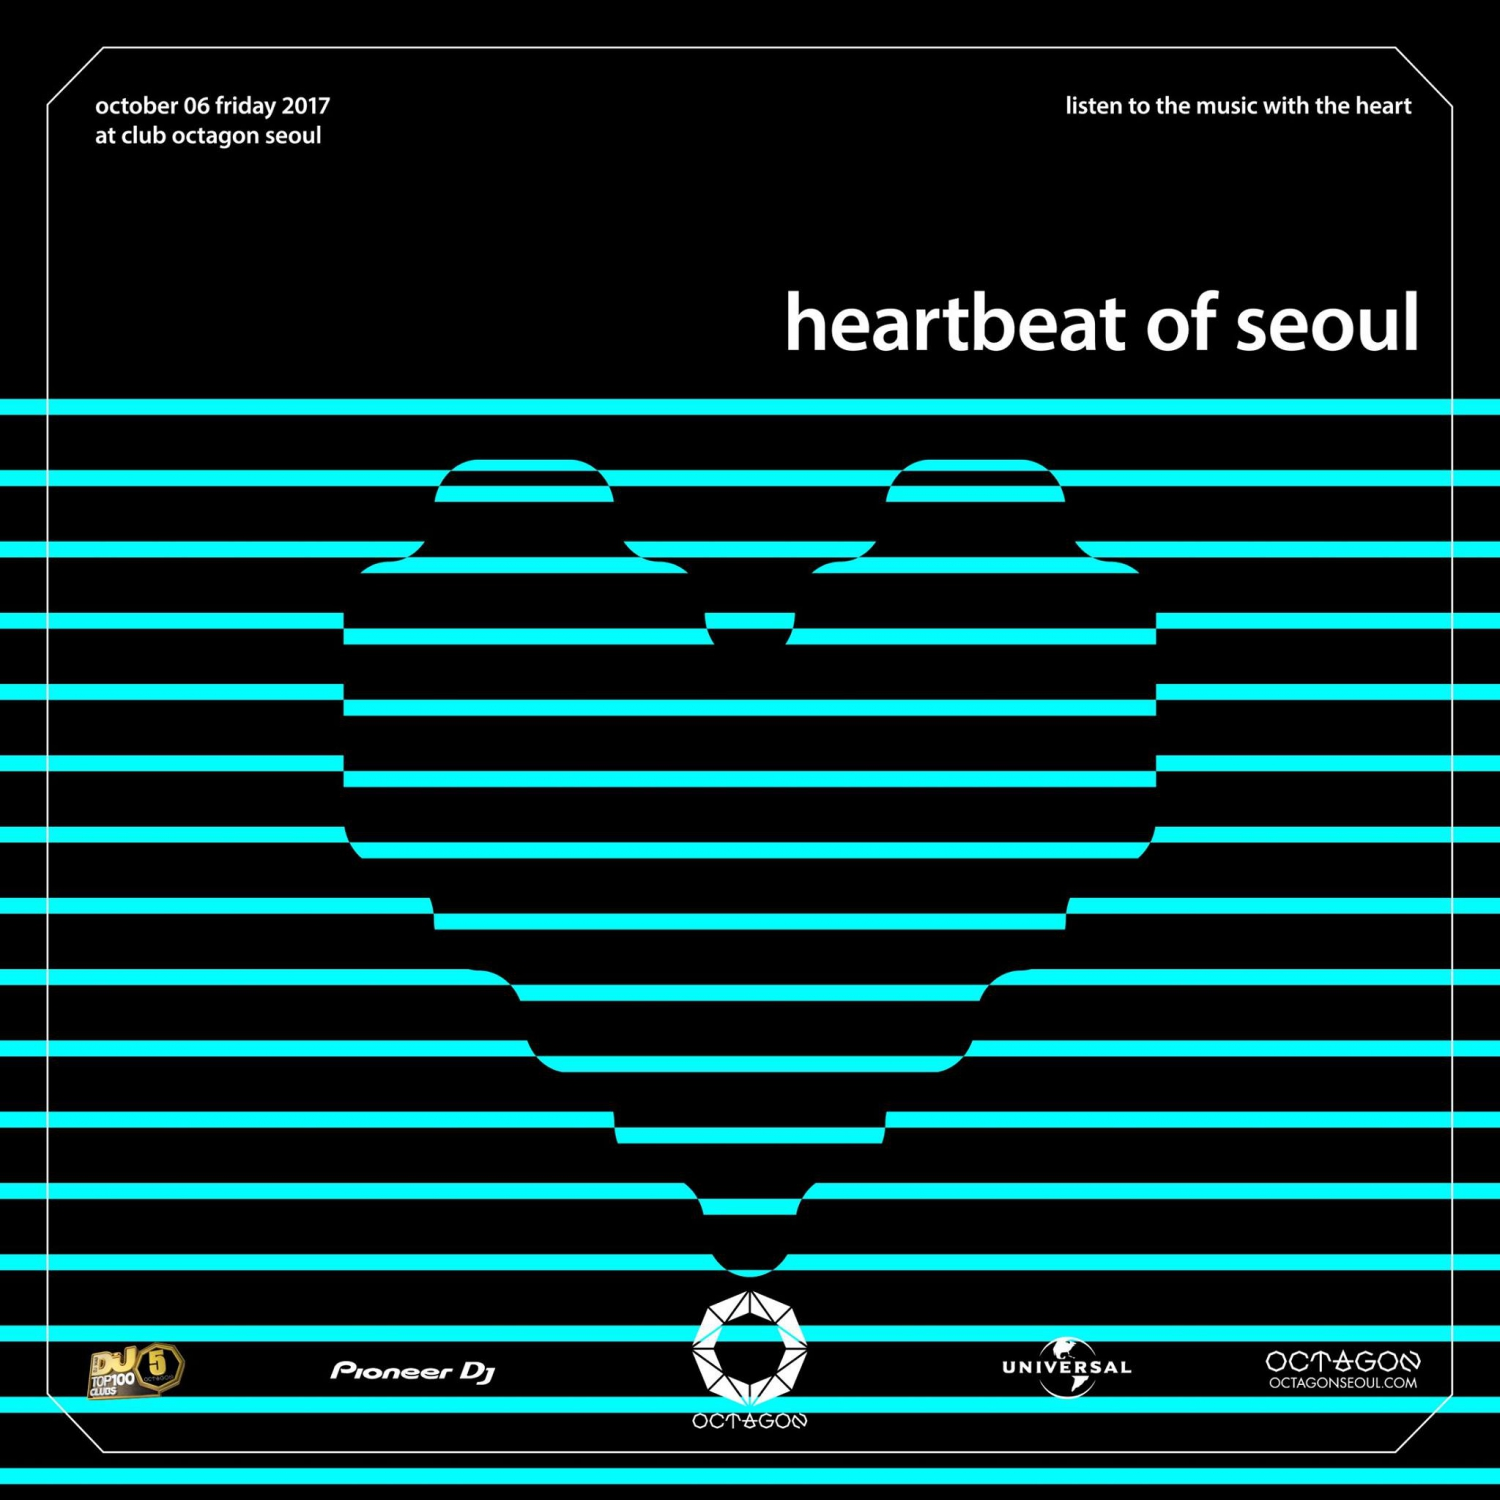 HEARTBEAT OF SEOUL